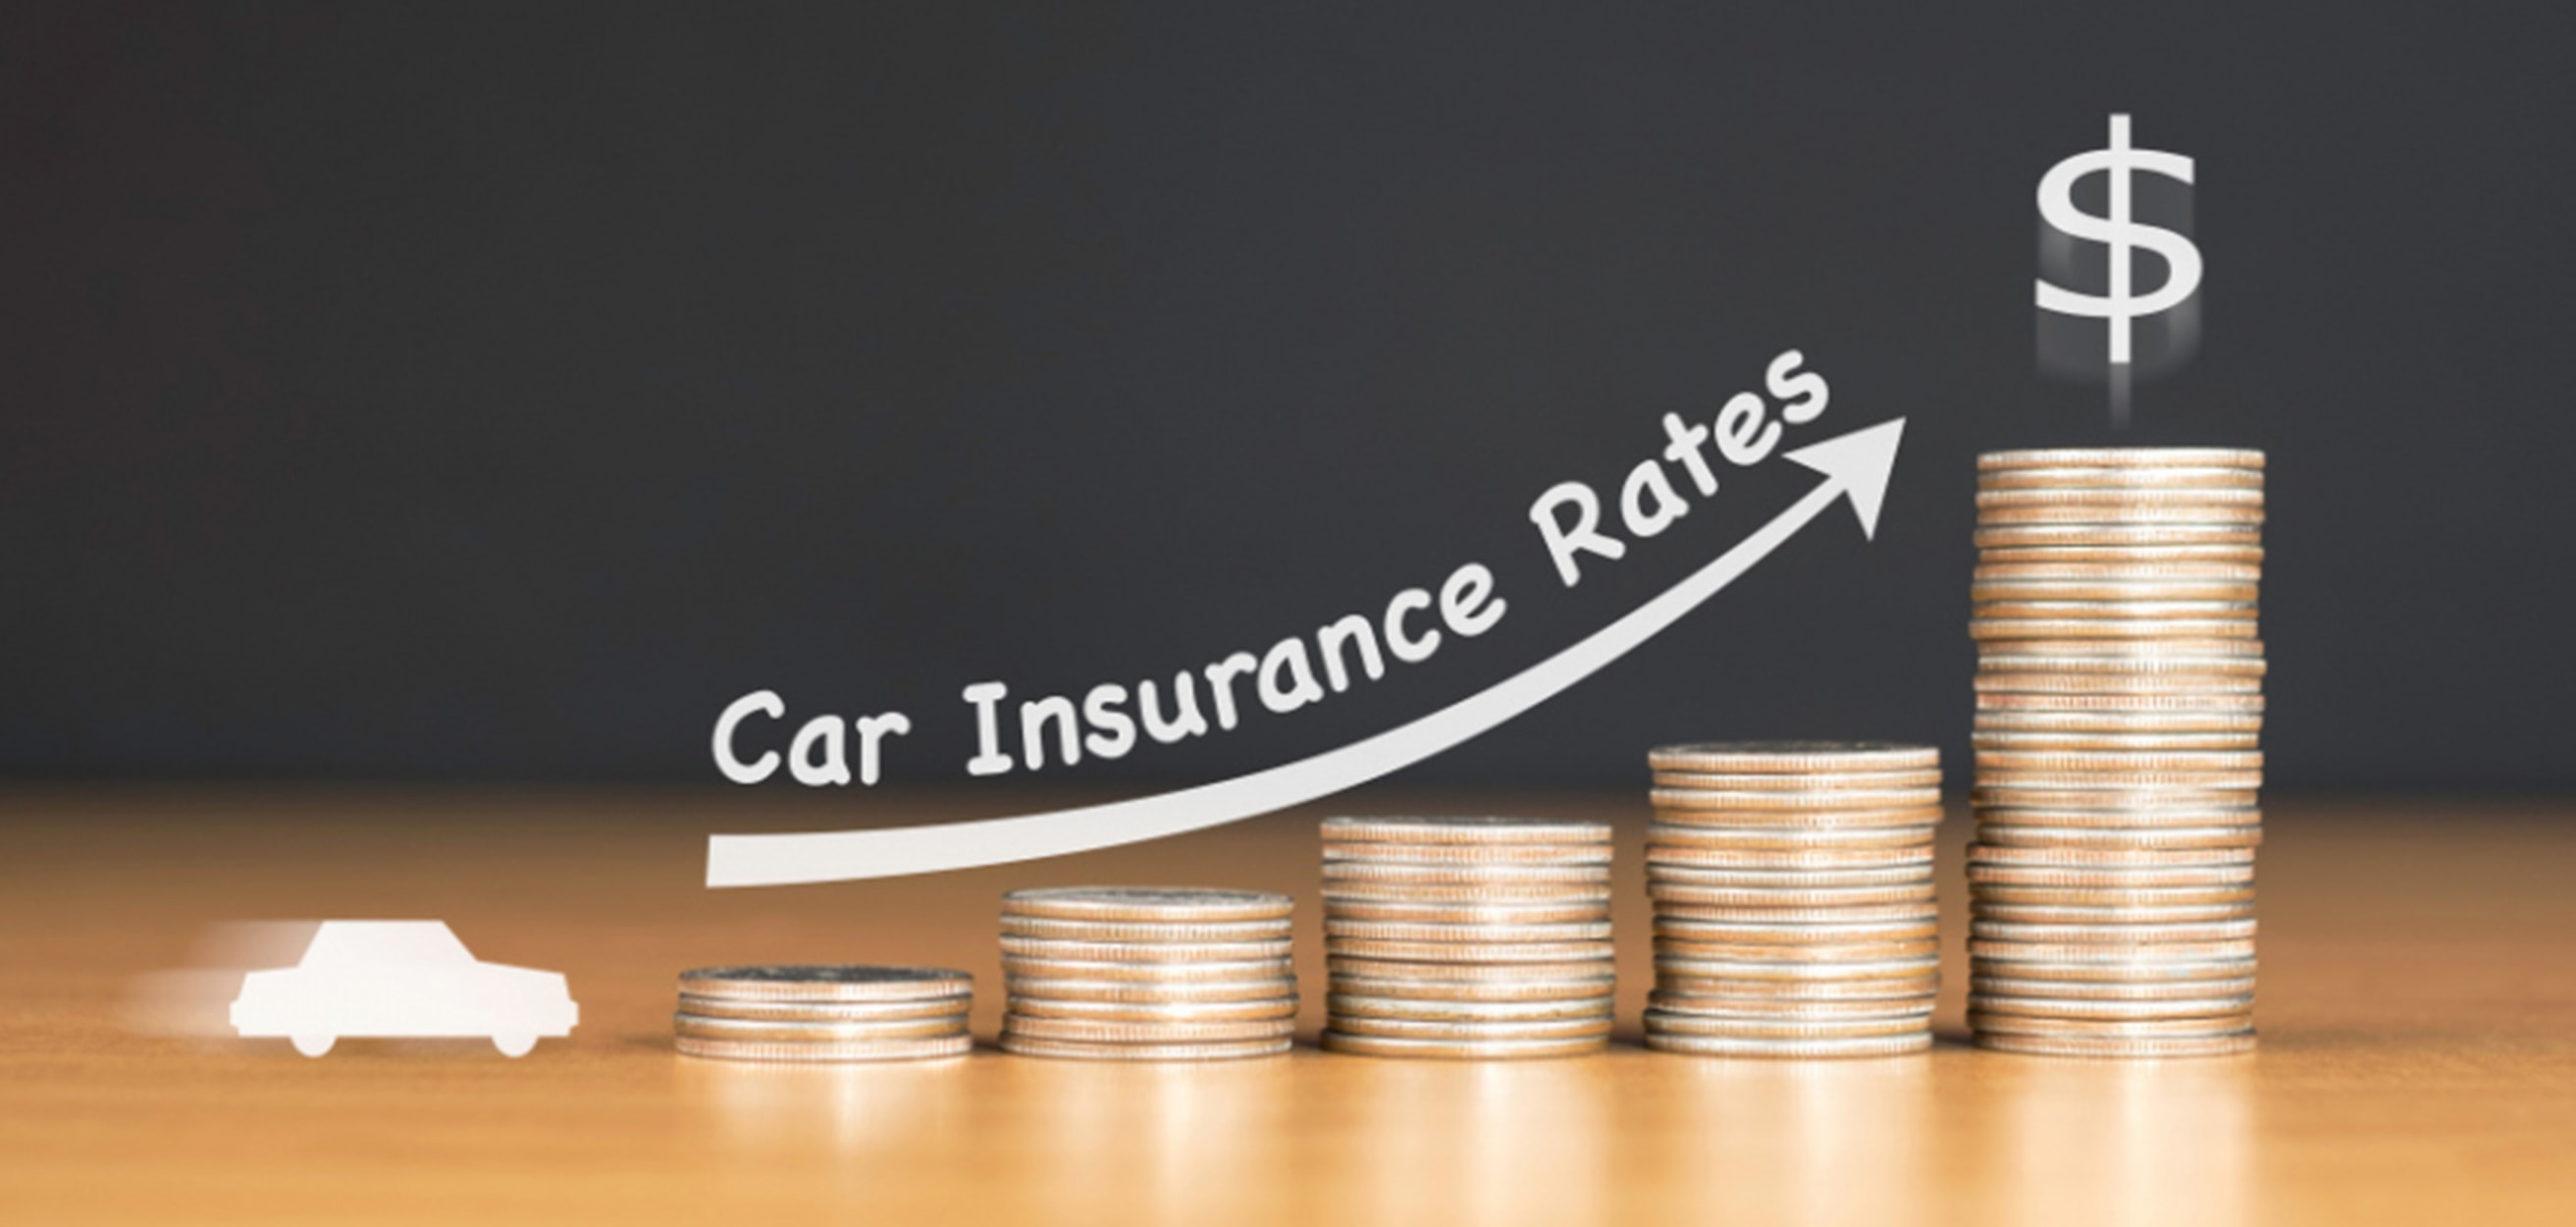 7 Factors That Will Drive Up Your Car Insurance Rate